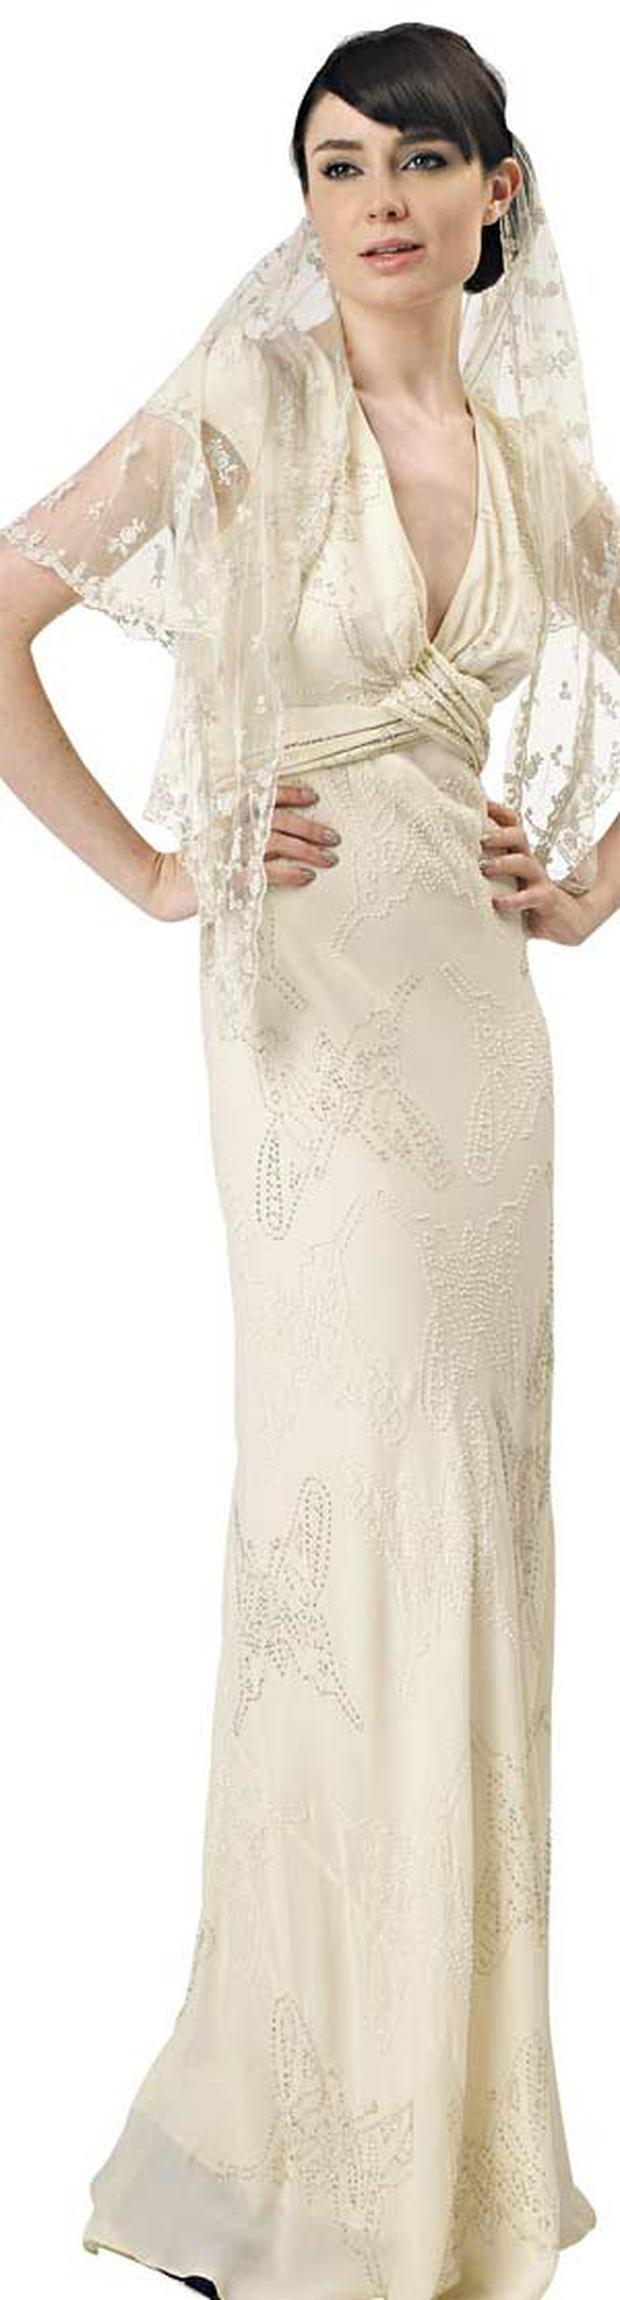 A Libelula bridal dress. The label is rumoured to be behind Kate's gown.